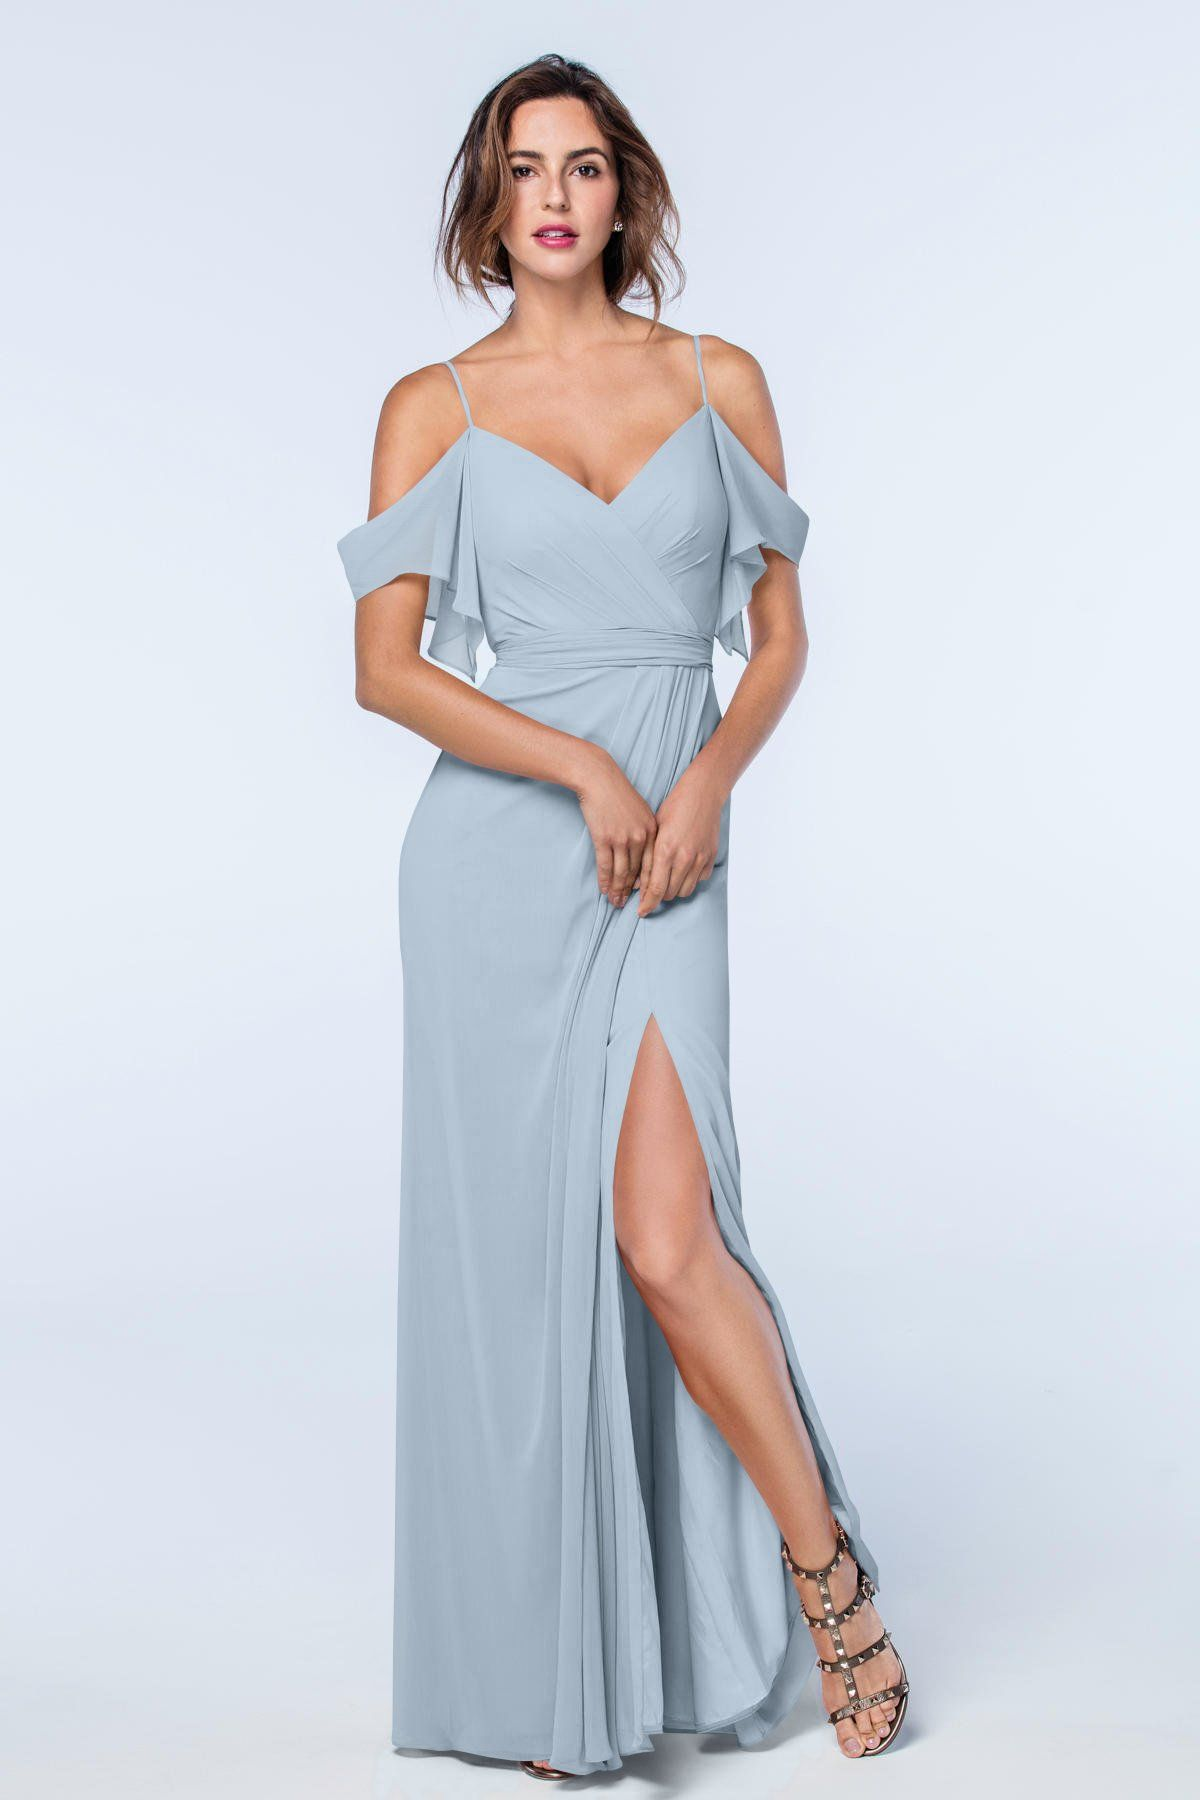 Royal blue chiffon one shoulder bridesmaid dresses with side split - Watters French Blue Aldridge Bridesmaid Dress Featuring An Off The Feminine Shoulder Detail And Side